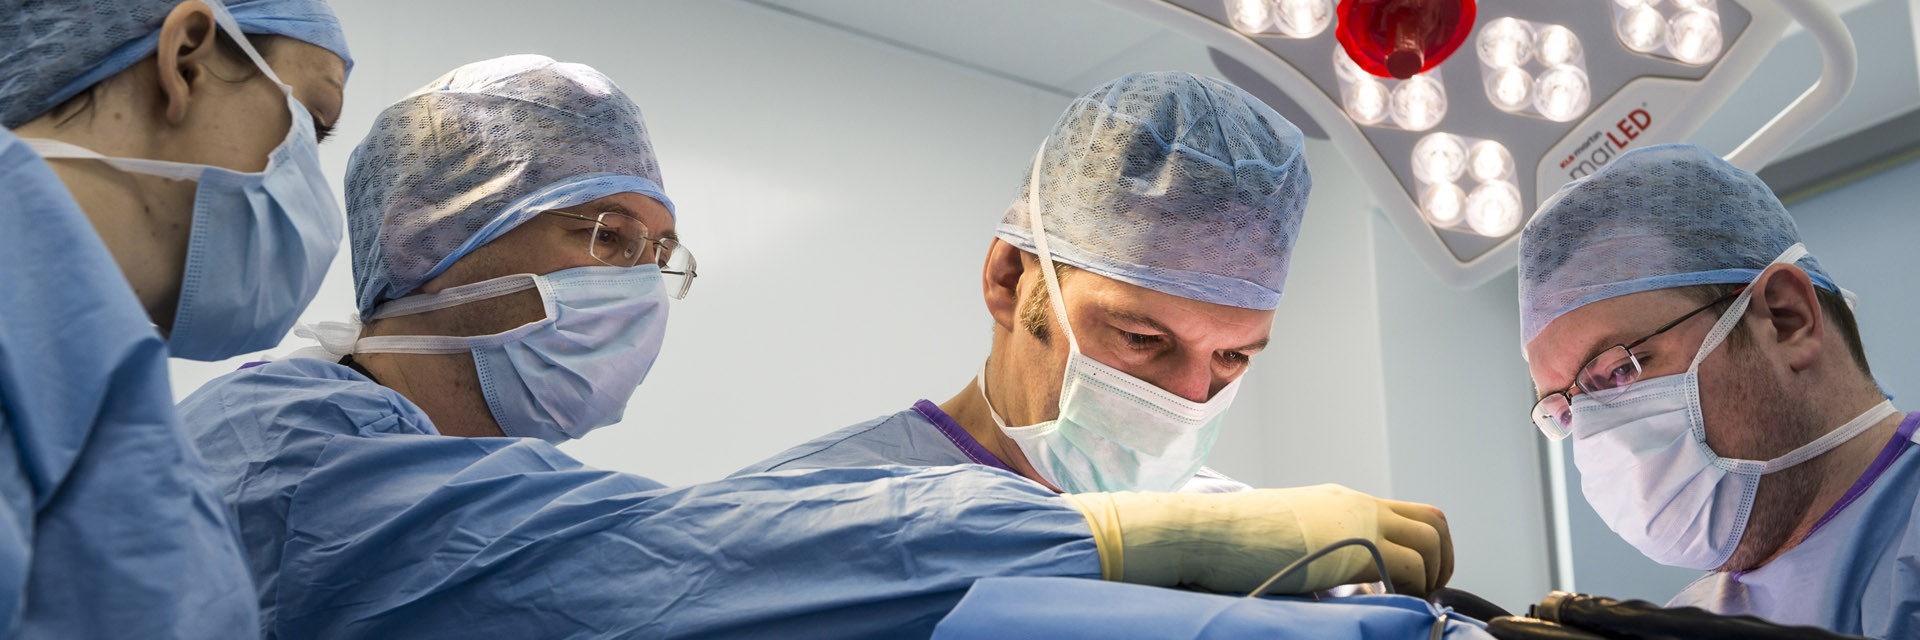 Clinical Director Nick Bacon in surgery at Fitzpatrick Referrals Oncology hospital